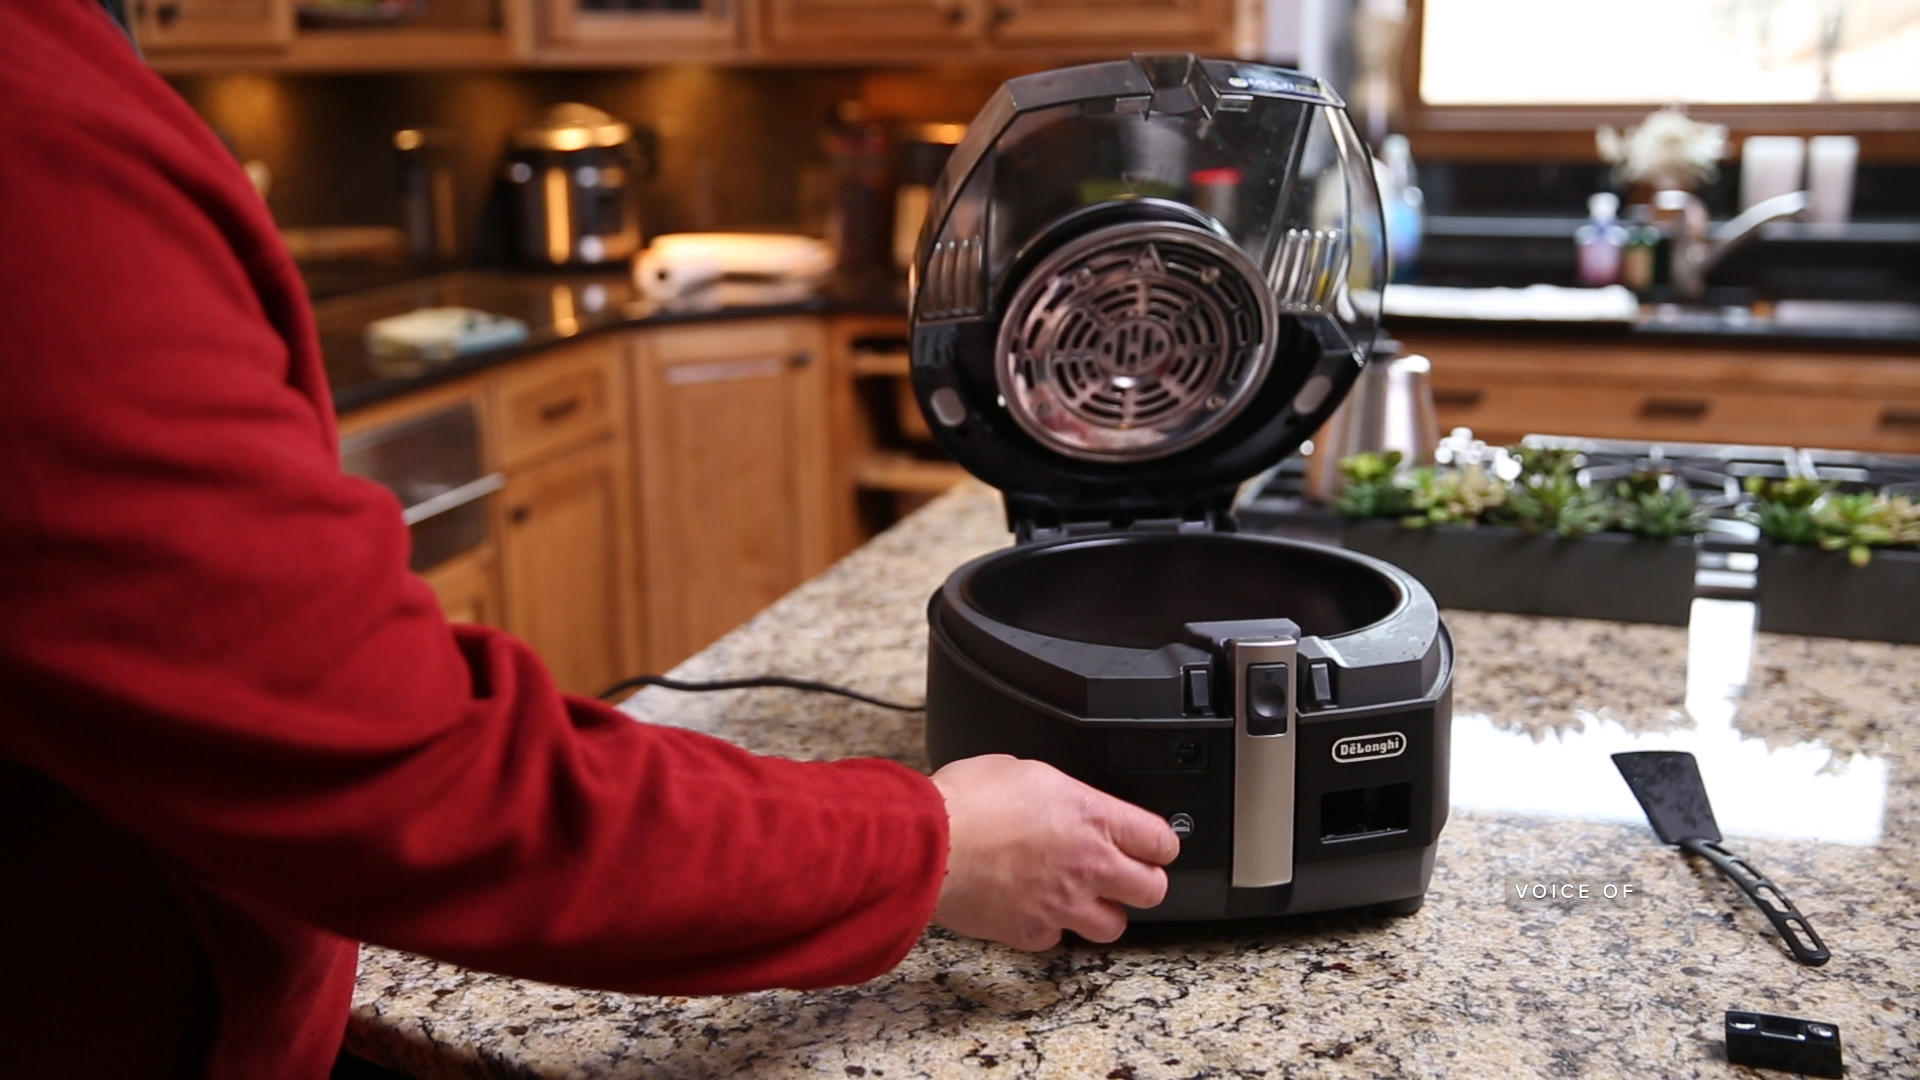 Video: DeLonghi's MultiFry prepares tasty treats with less oil